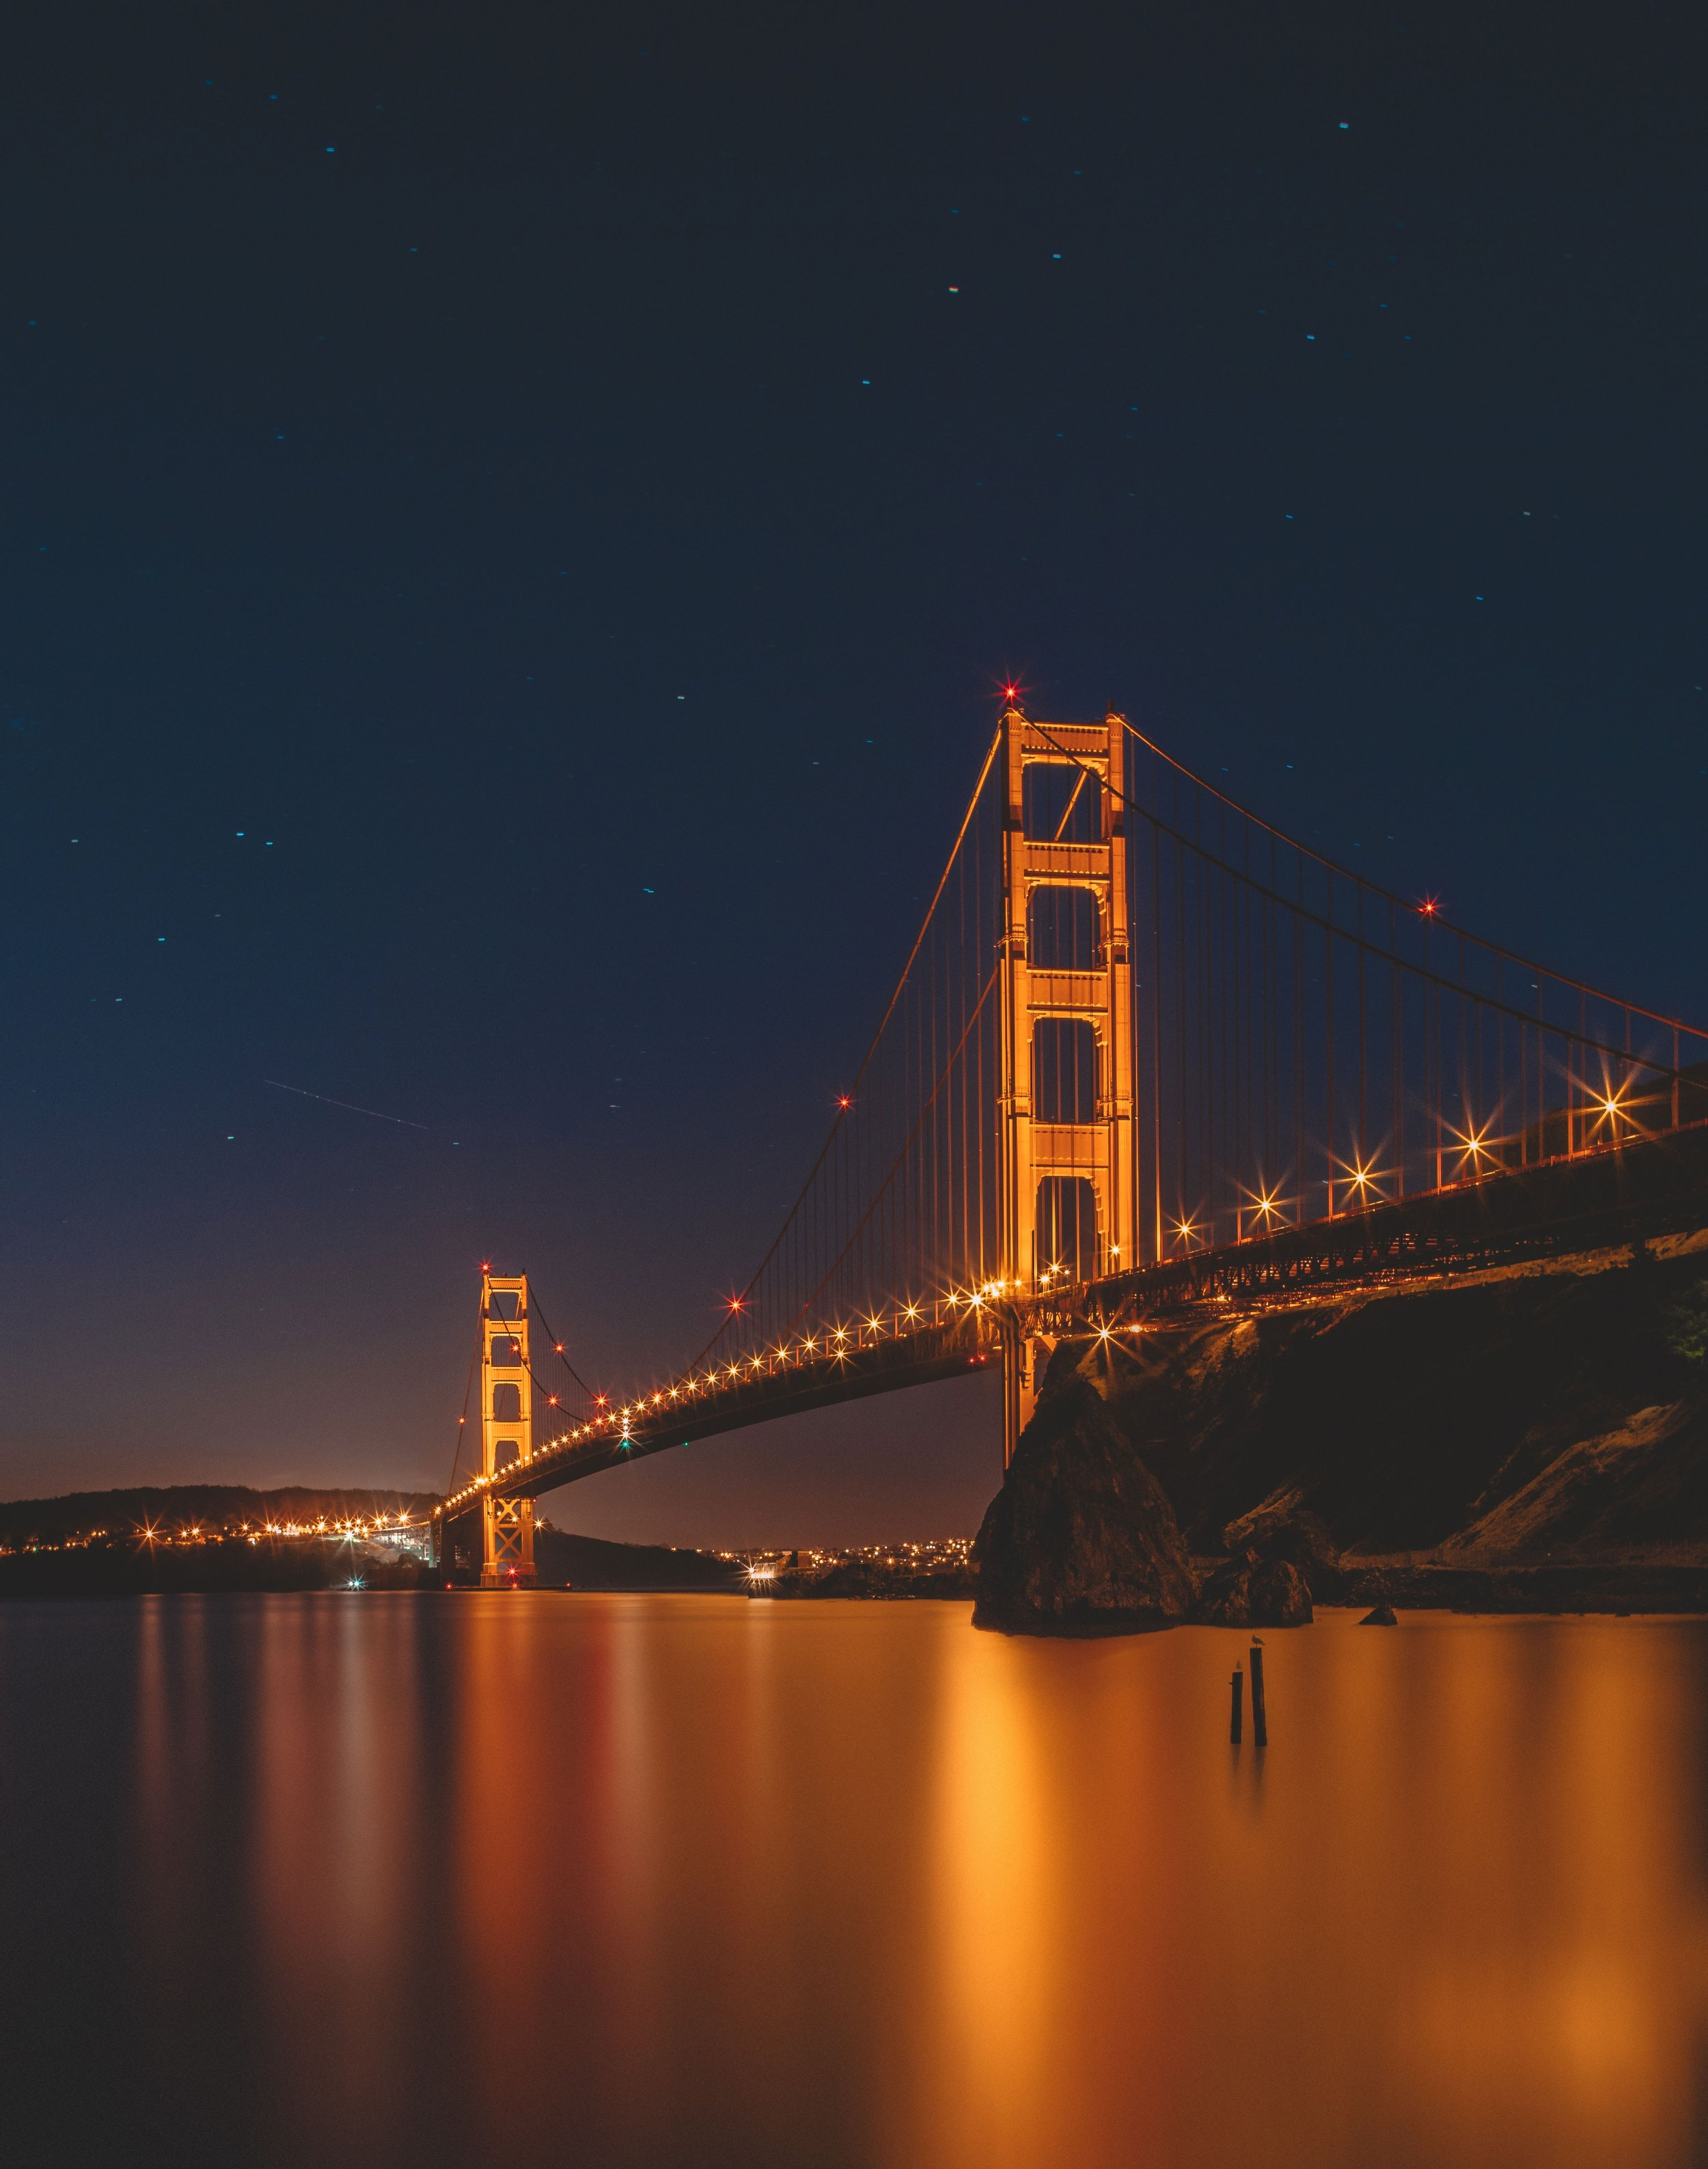 Night Lights in Marin at Fort Baker. Photo by  Ian Simmonds  on  Unsplash